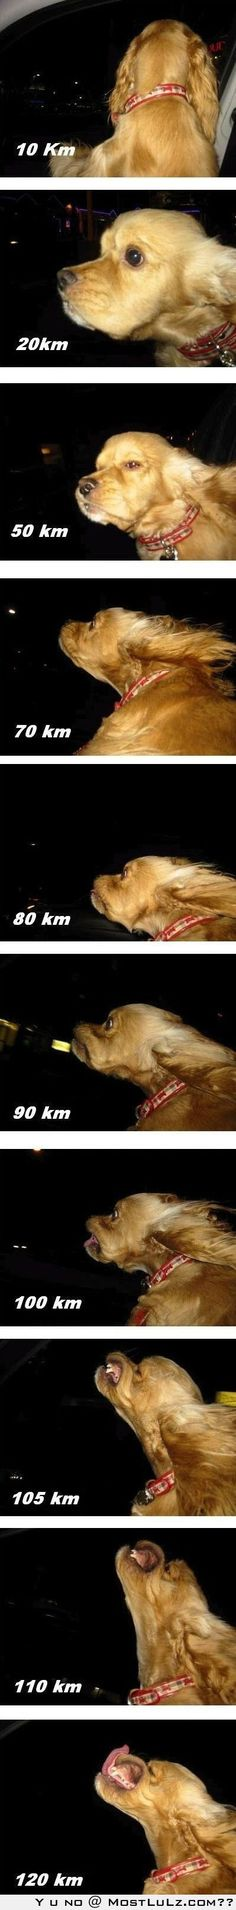 """Dog Speedometer"" - If this is for real then I would like to see the perpetrator flogged. Letting a dog hang out the window going 60mph is dangerous."